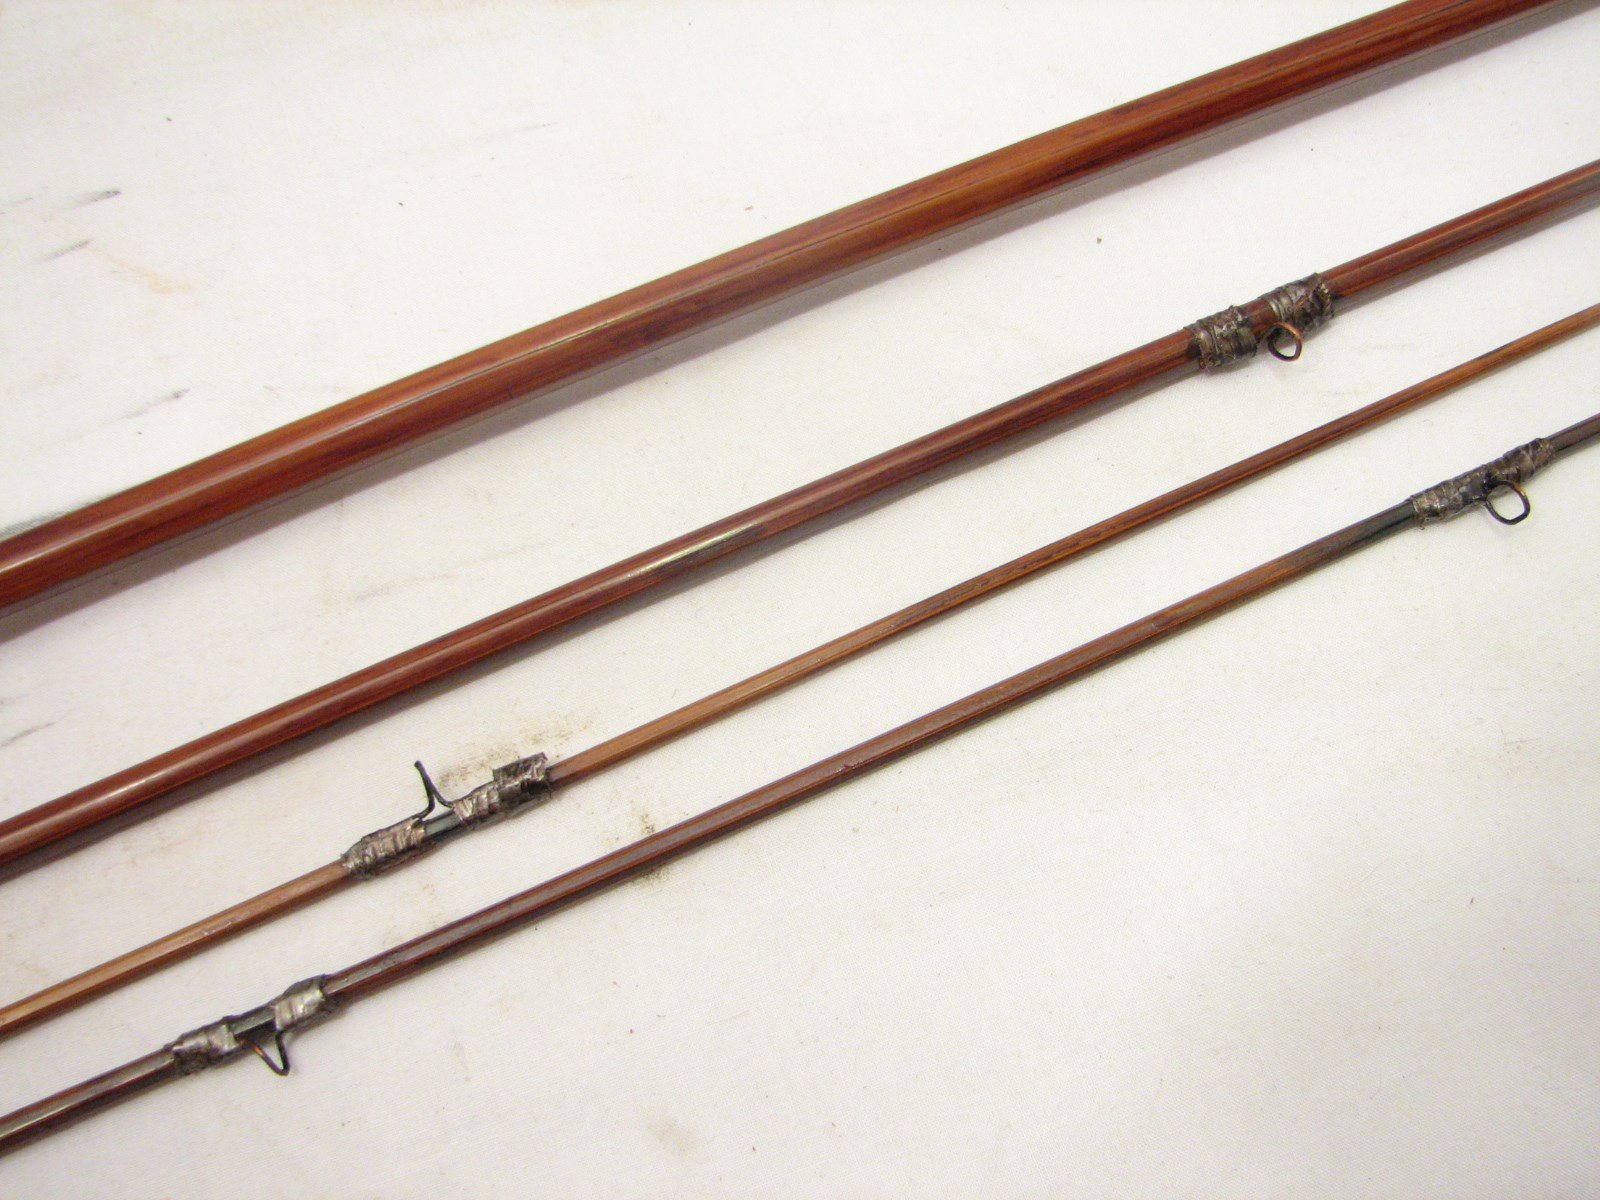 Vintage south bend 323 9 39 bamboo fly fishing rod fish ebay for Old fishing rods